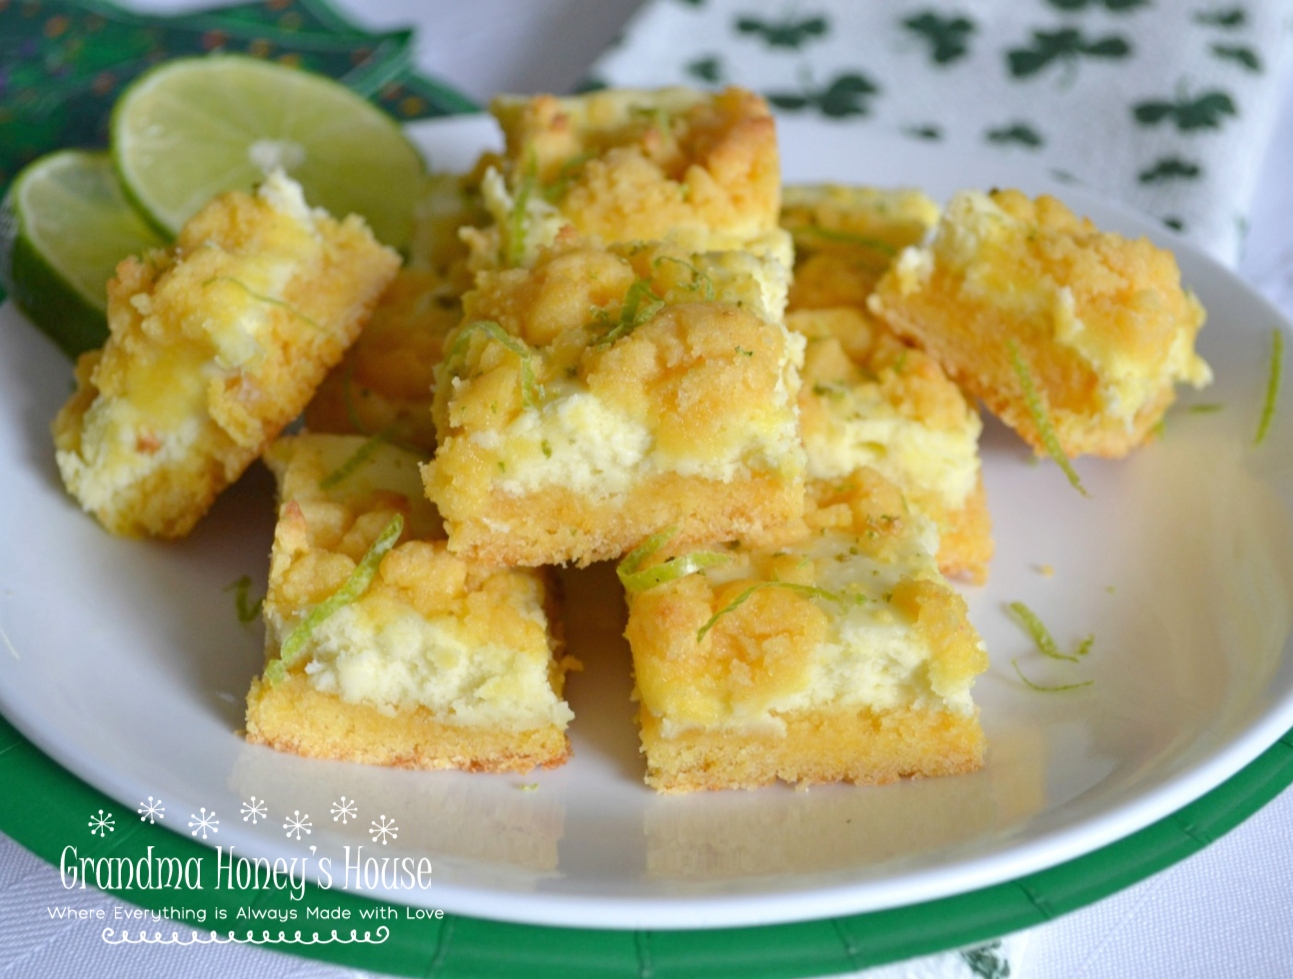 A refreshing lime, cream cheese dessert for St Patrick's Day.